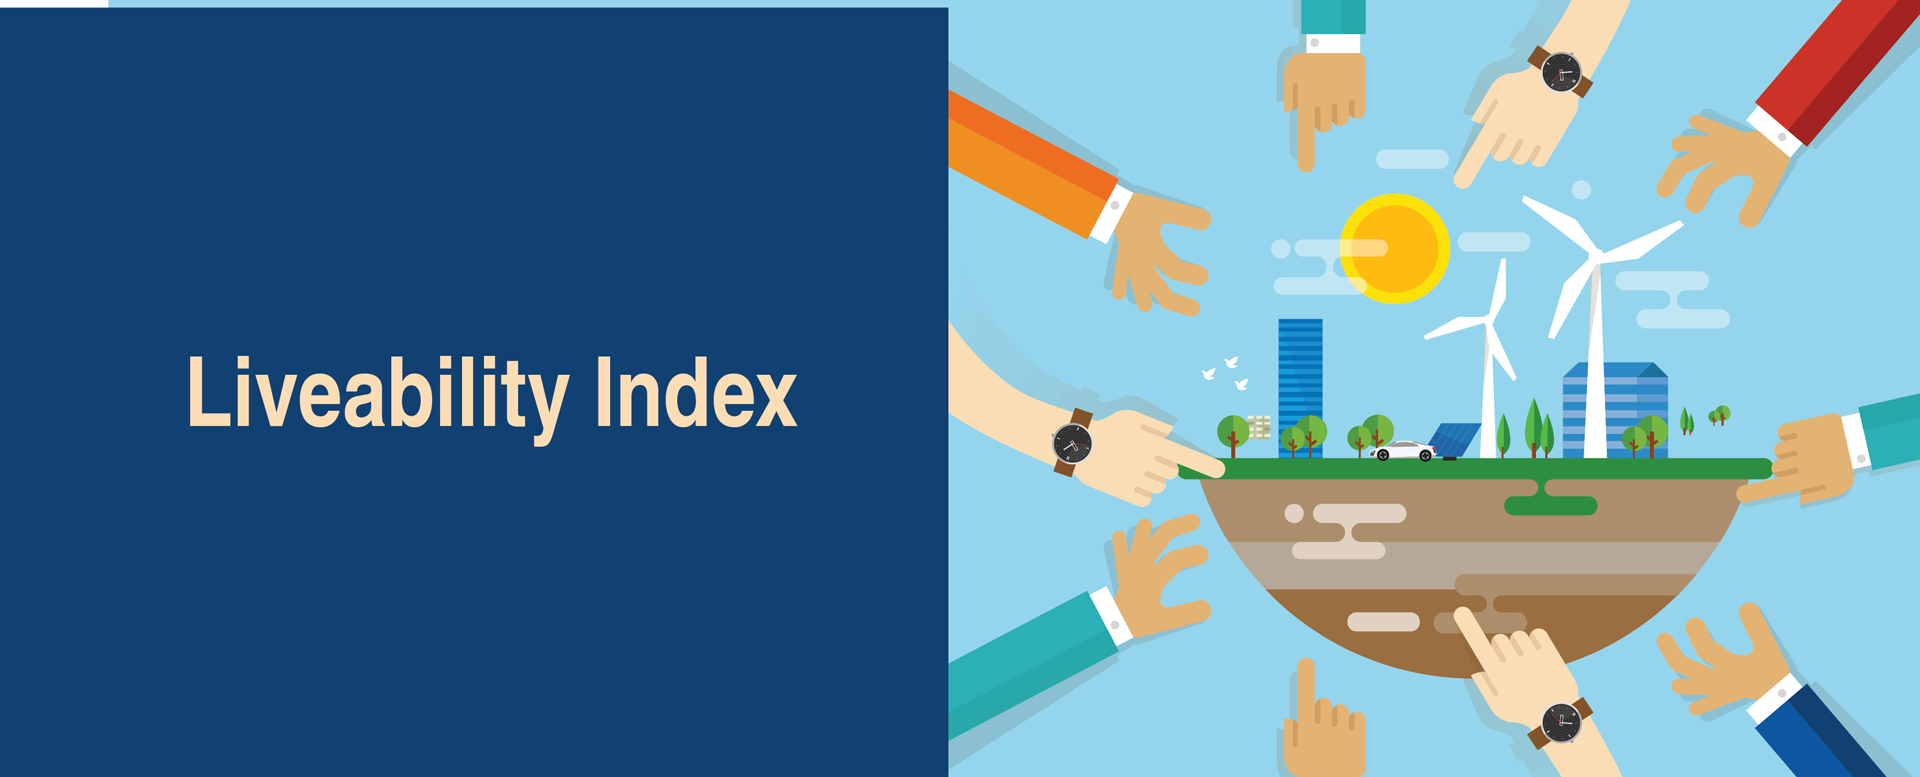 Liveability Index